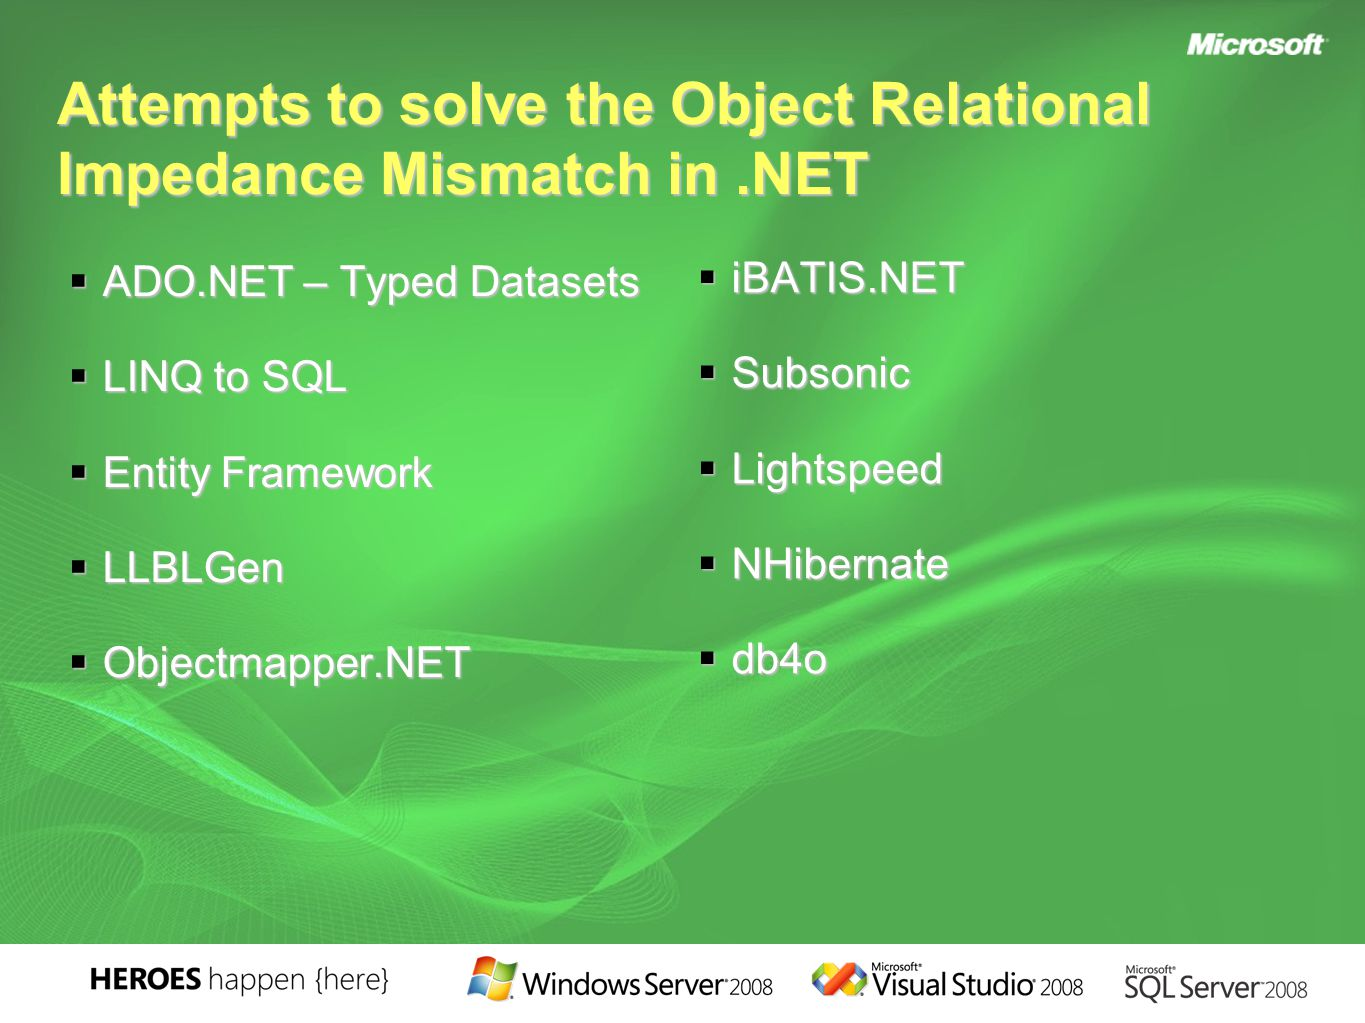 Object Relational Mapping  Attempts to solve object relational impedance mismatch  Data infrastructure is represented in separate files or as.NET attributes  Main aim is to maintain POCOs (Plain Old CLR Objects)